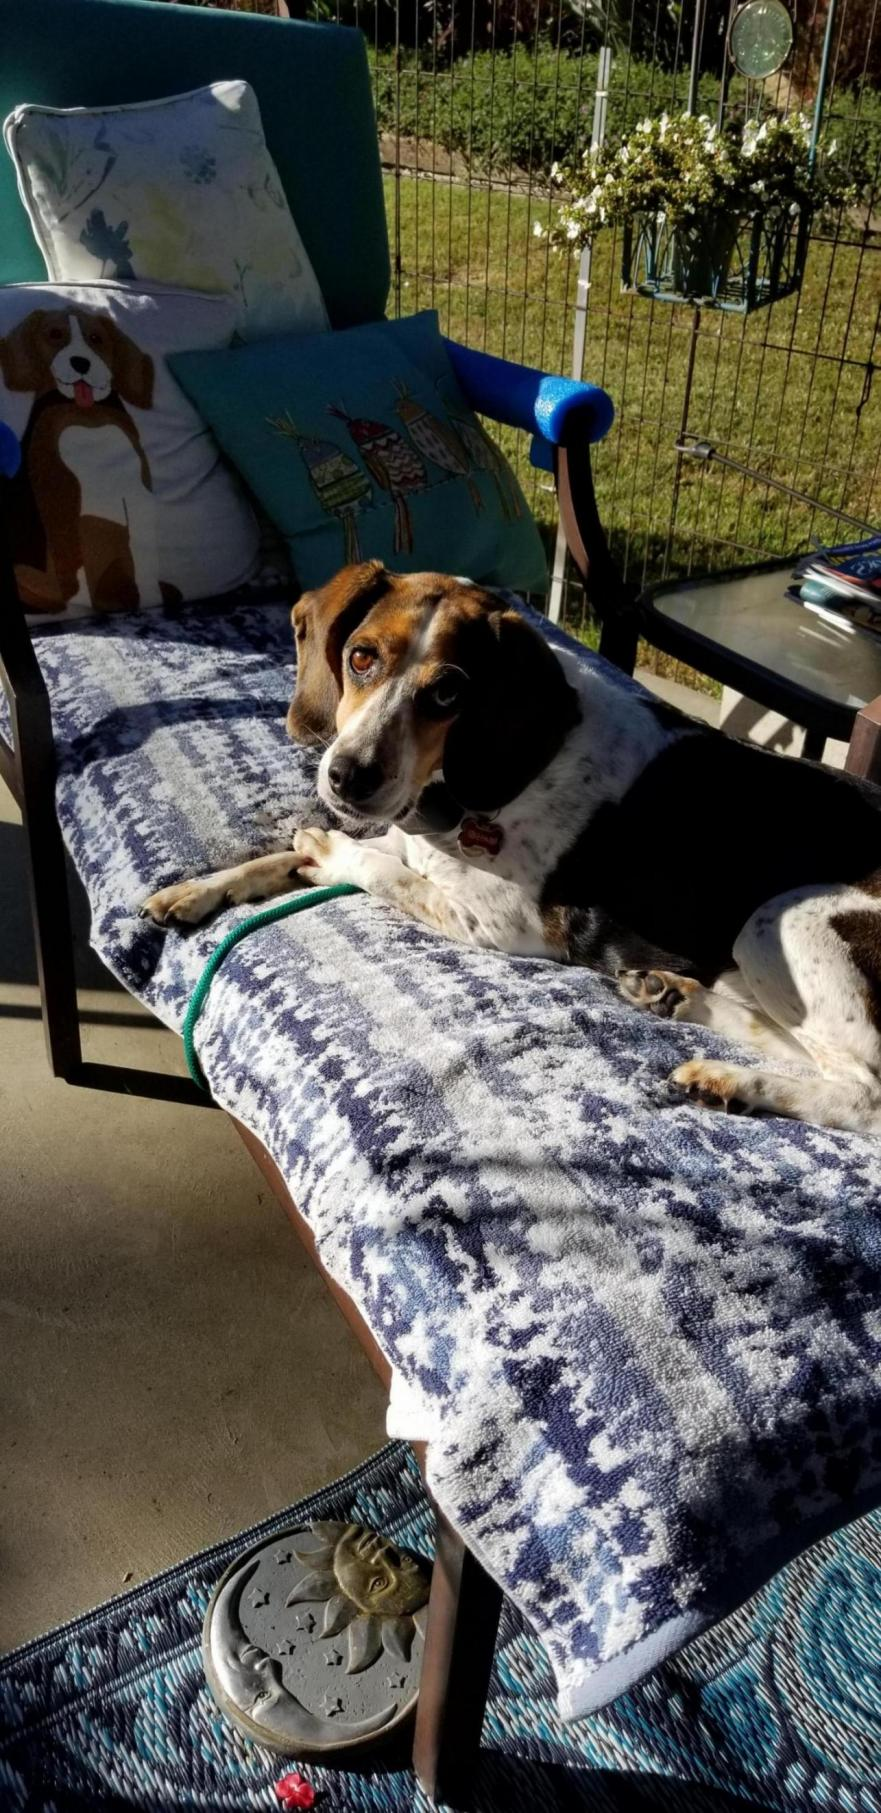 Post a picture of your Beagle-20190701_075836_1561993154233.jpg